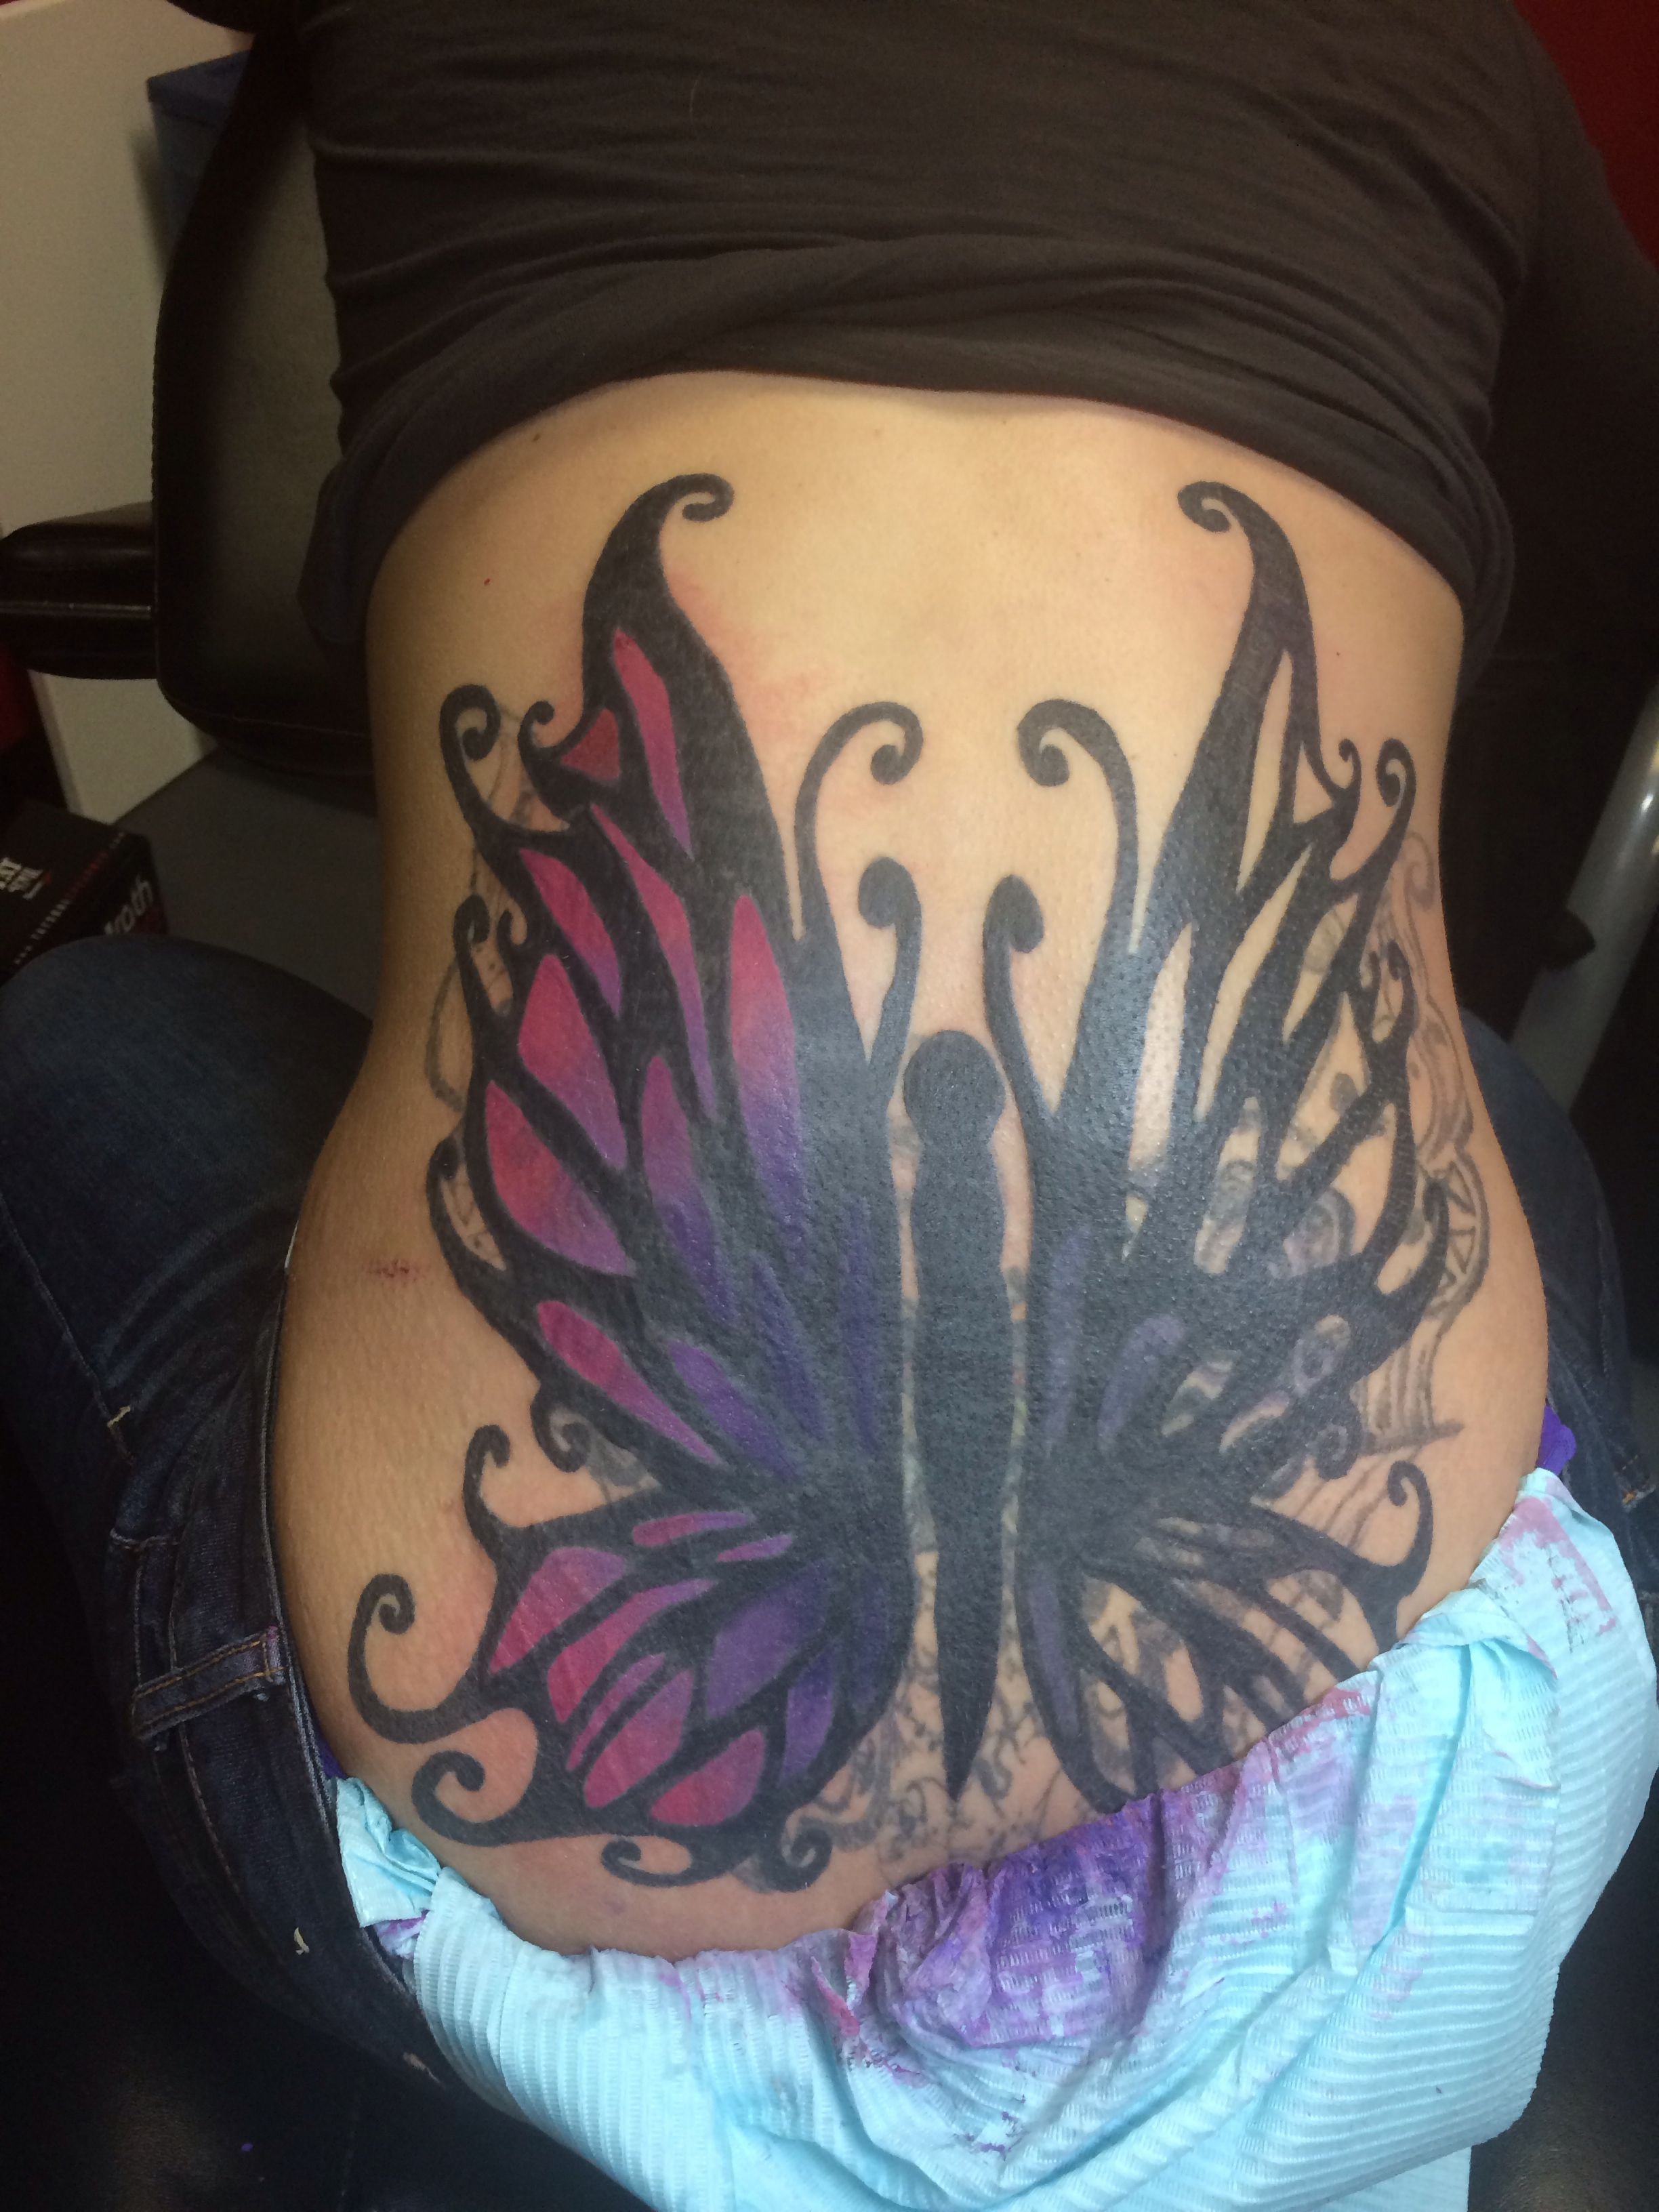 3rd session cover up